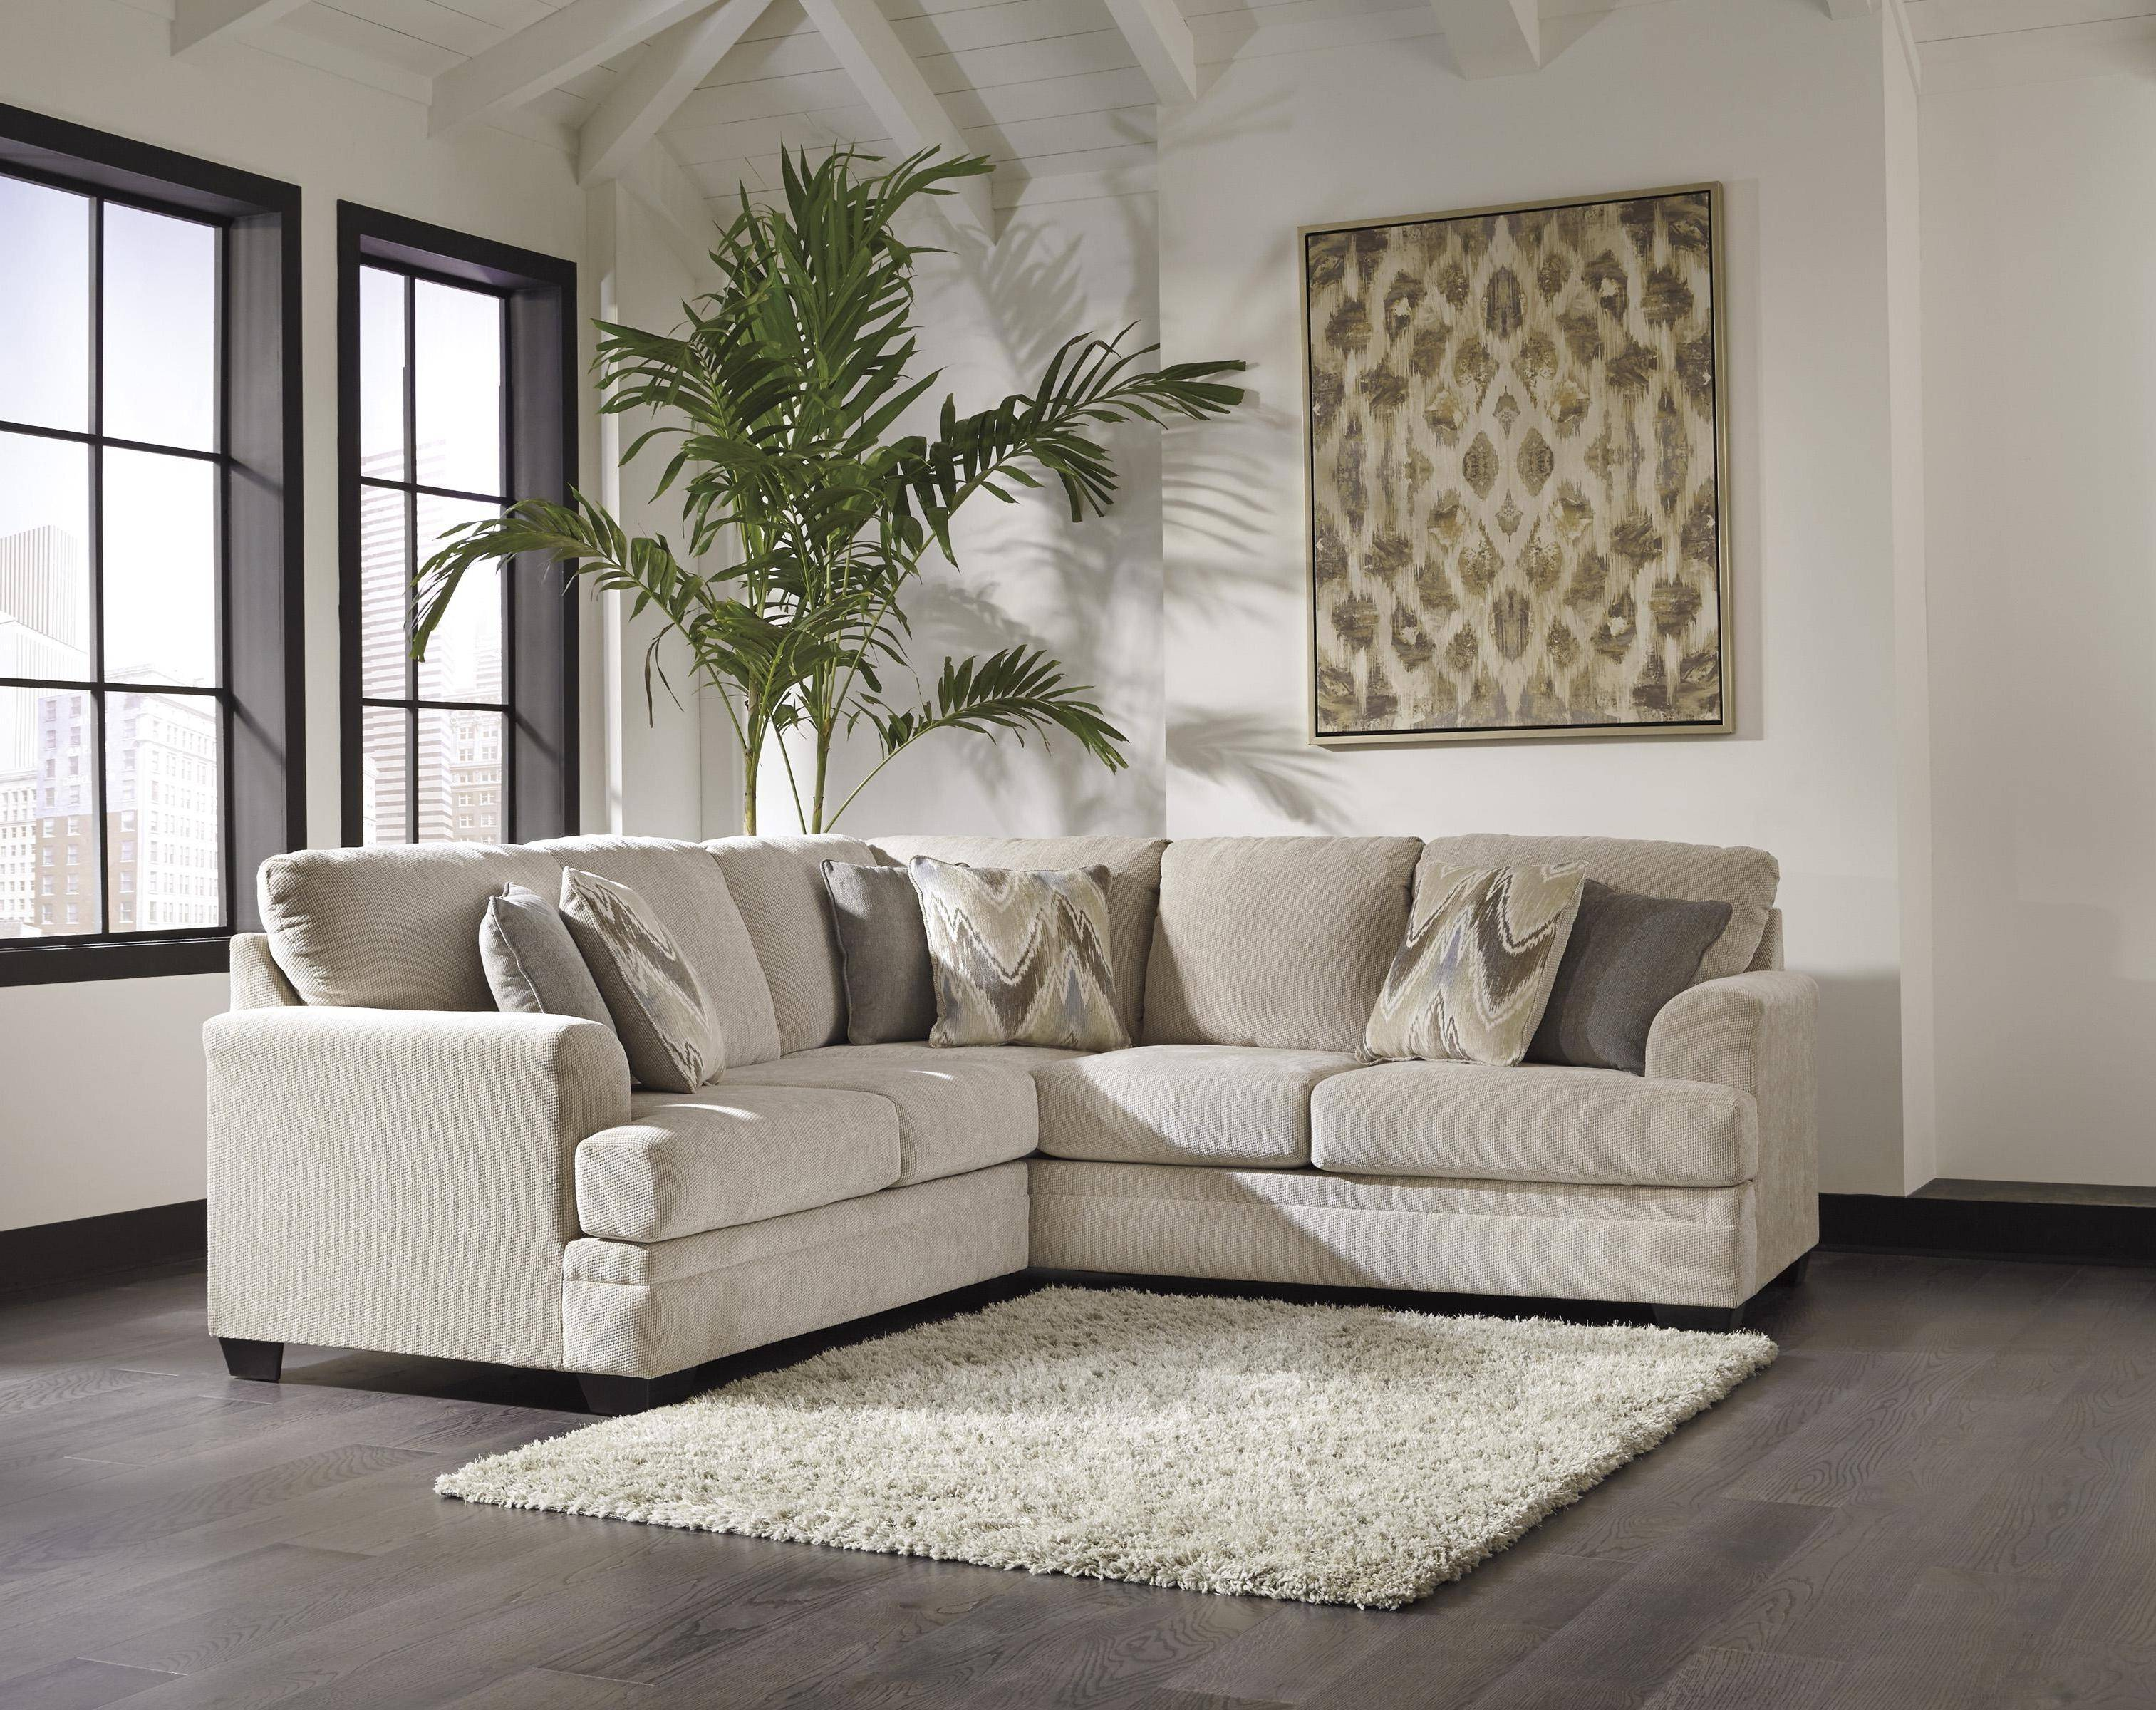 ashley ameer 4 piece sectional in sand laf 81806 55 46 67 08 kit rh nyfurnitureoutlets com